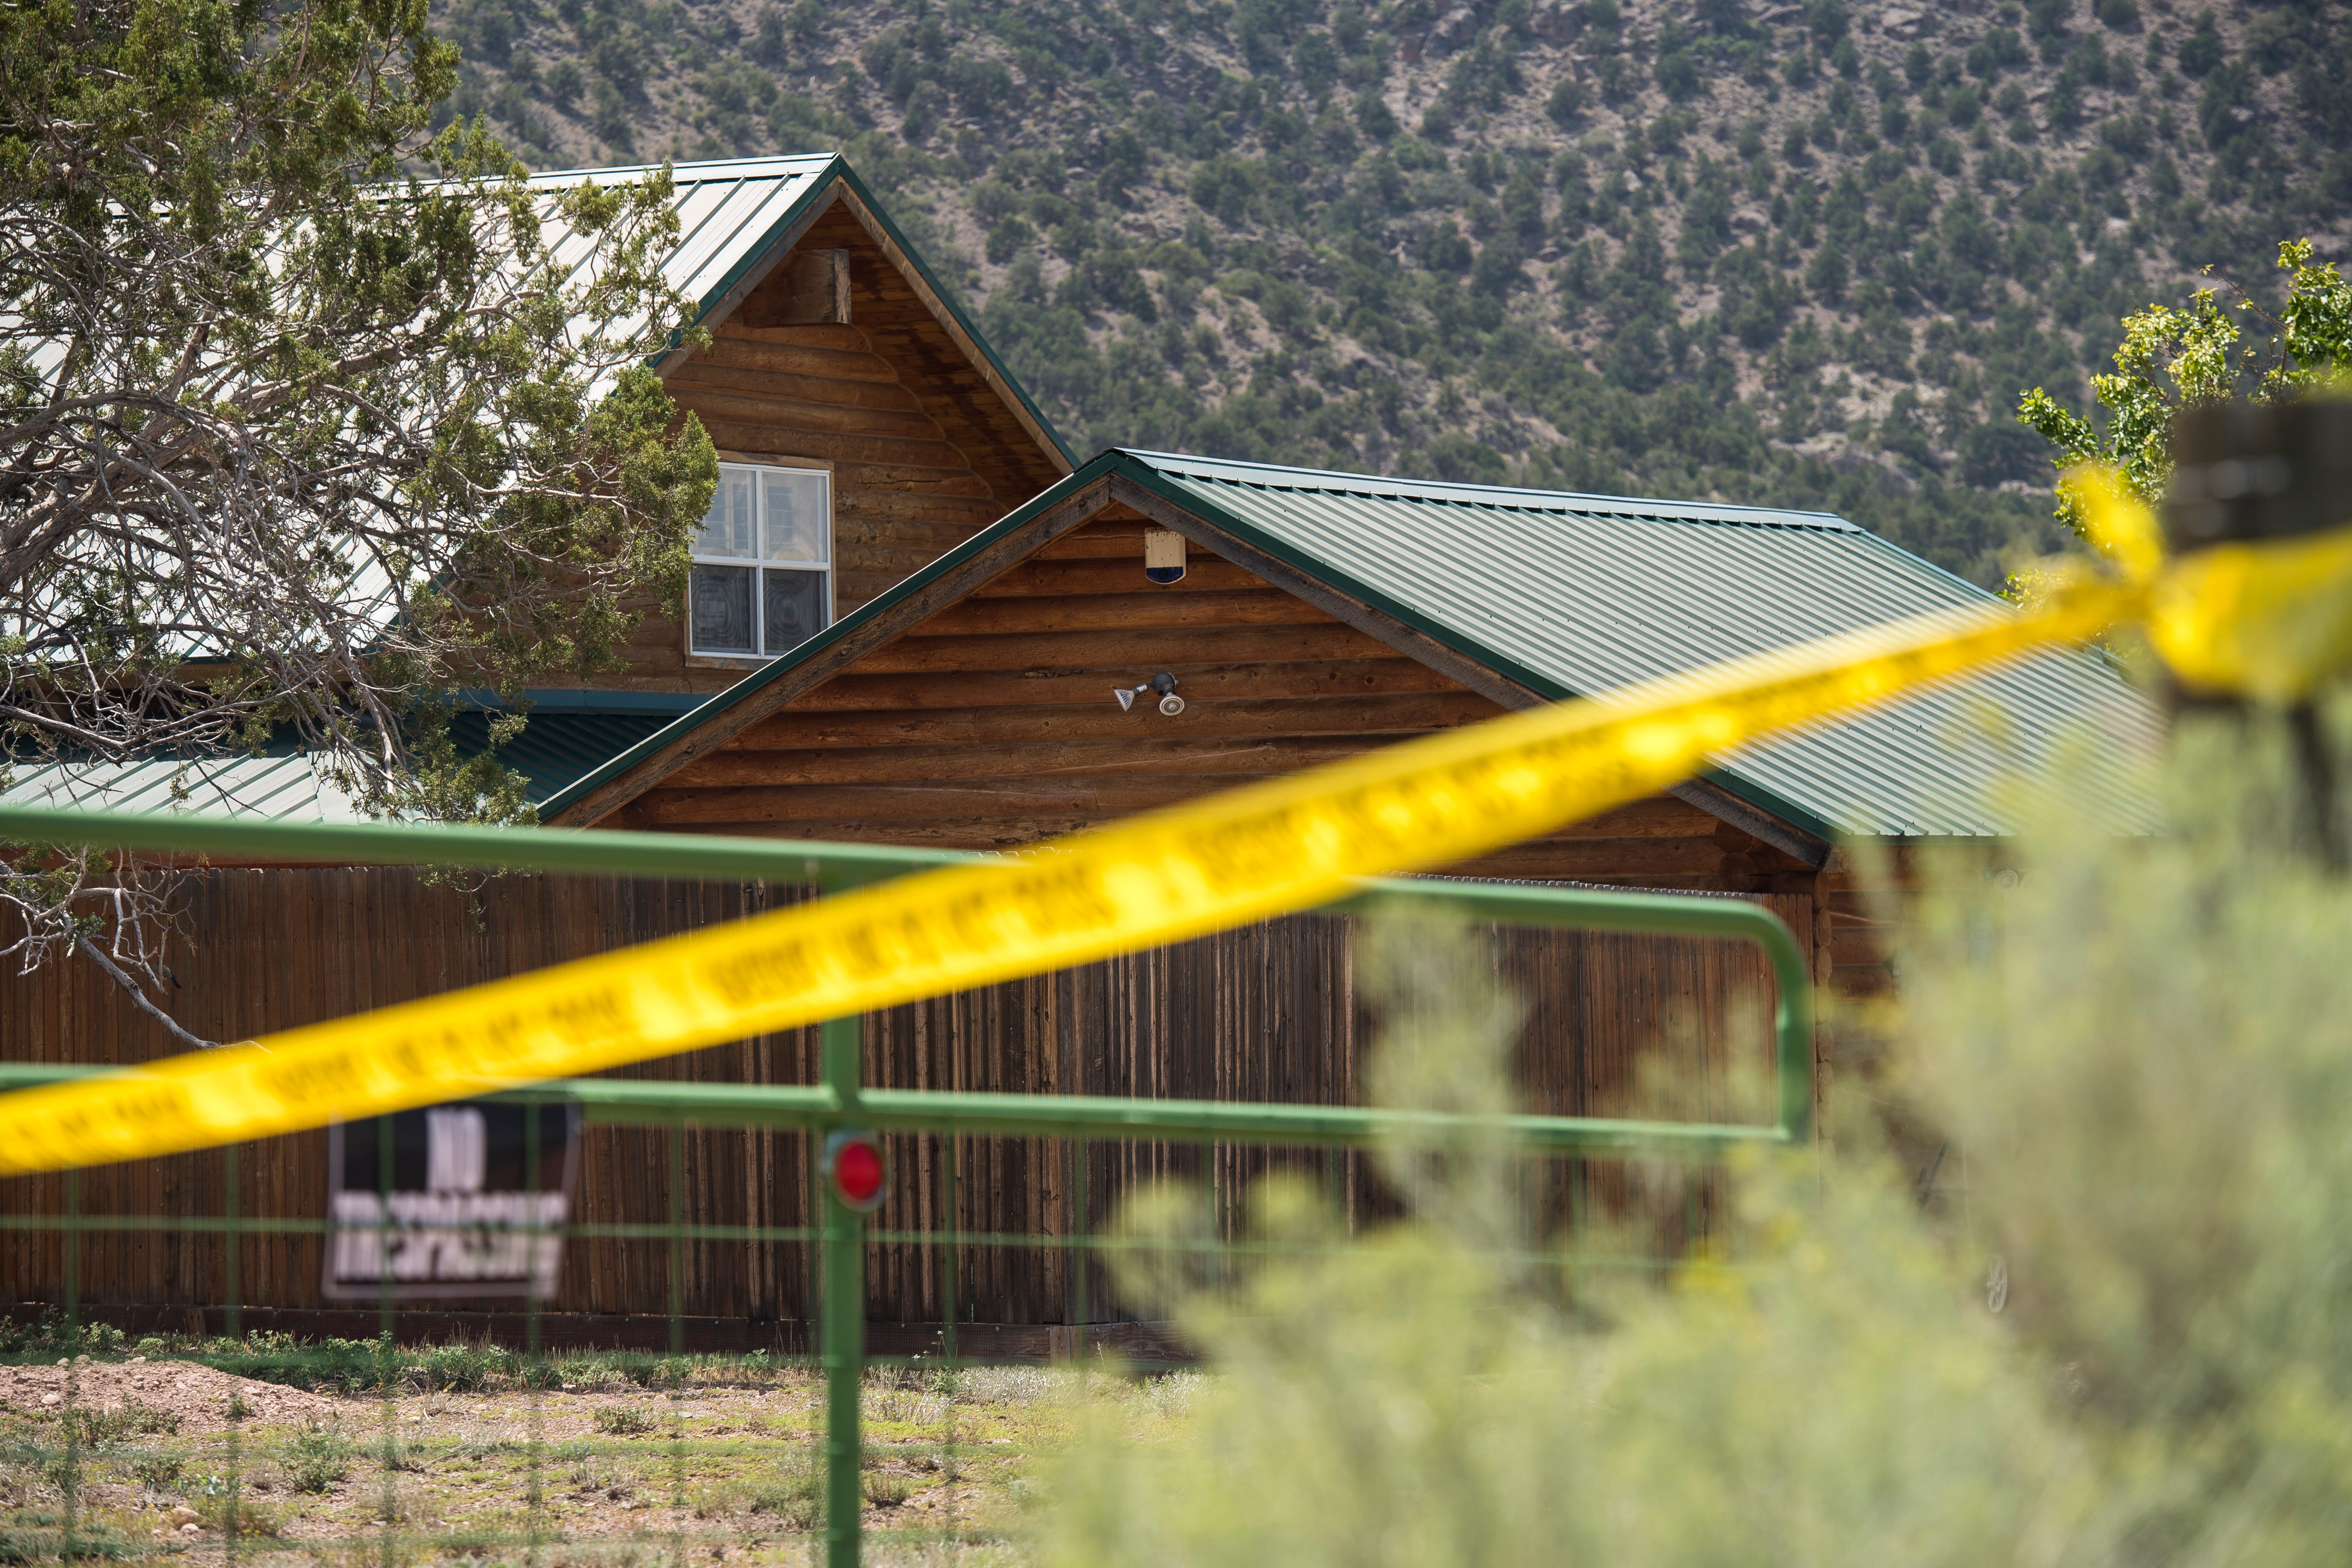 Iron County officials ID naked intruder shot by homeowner